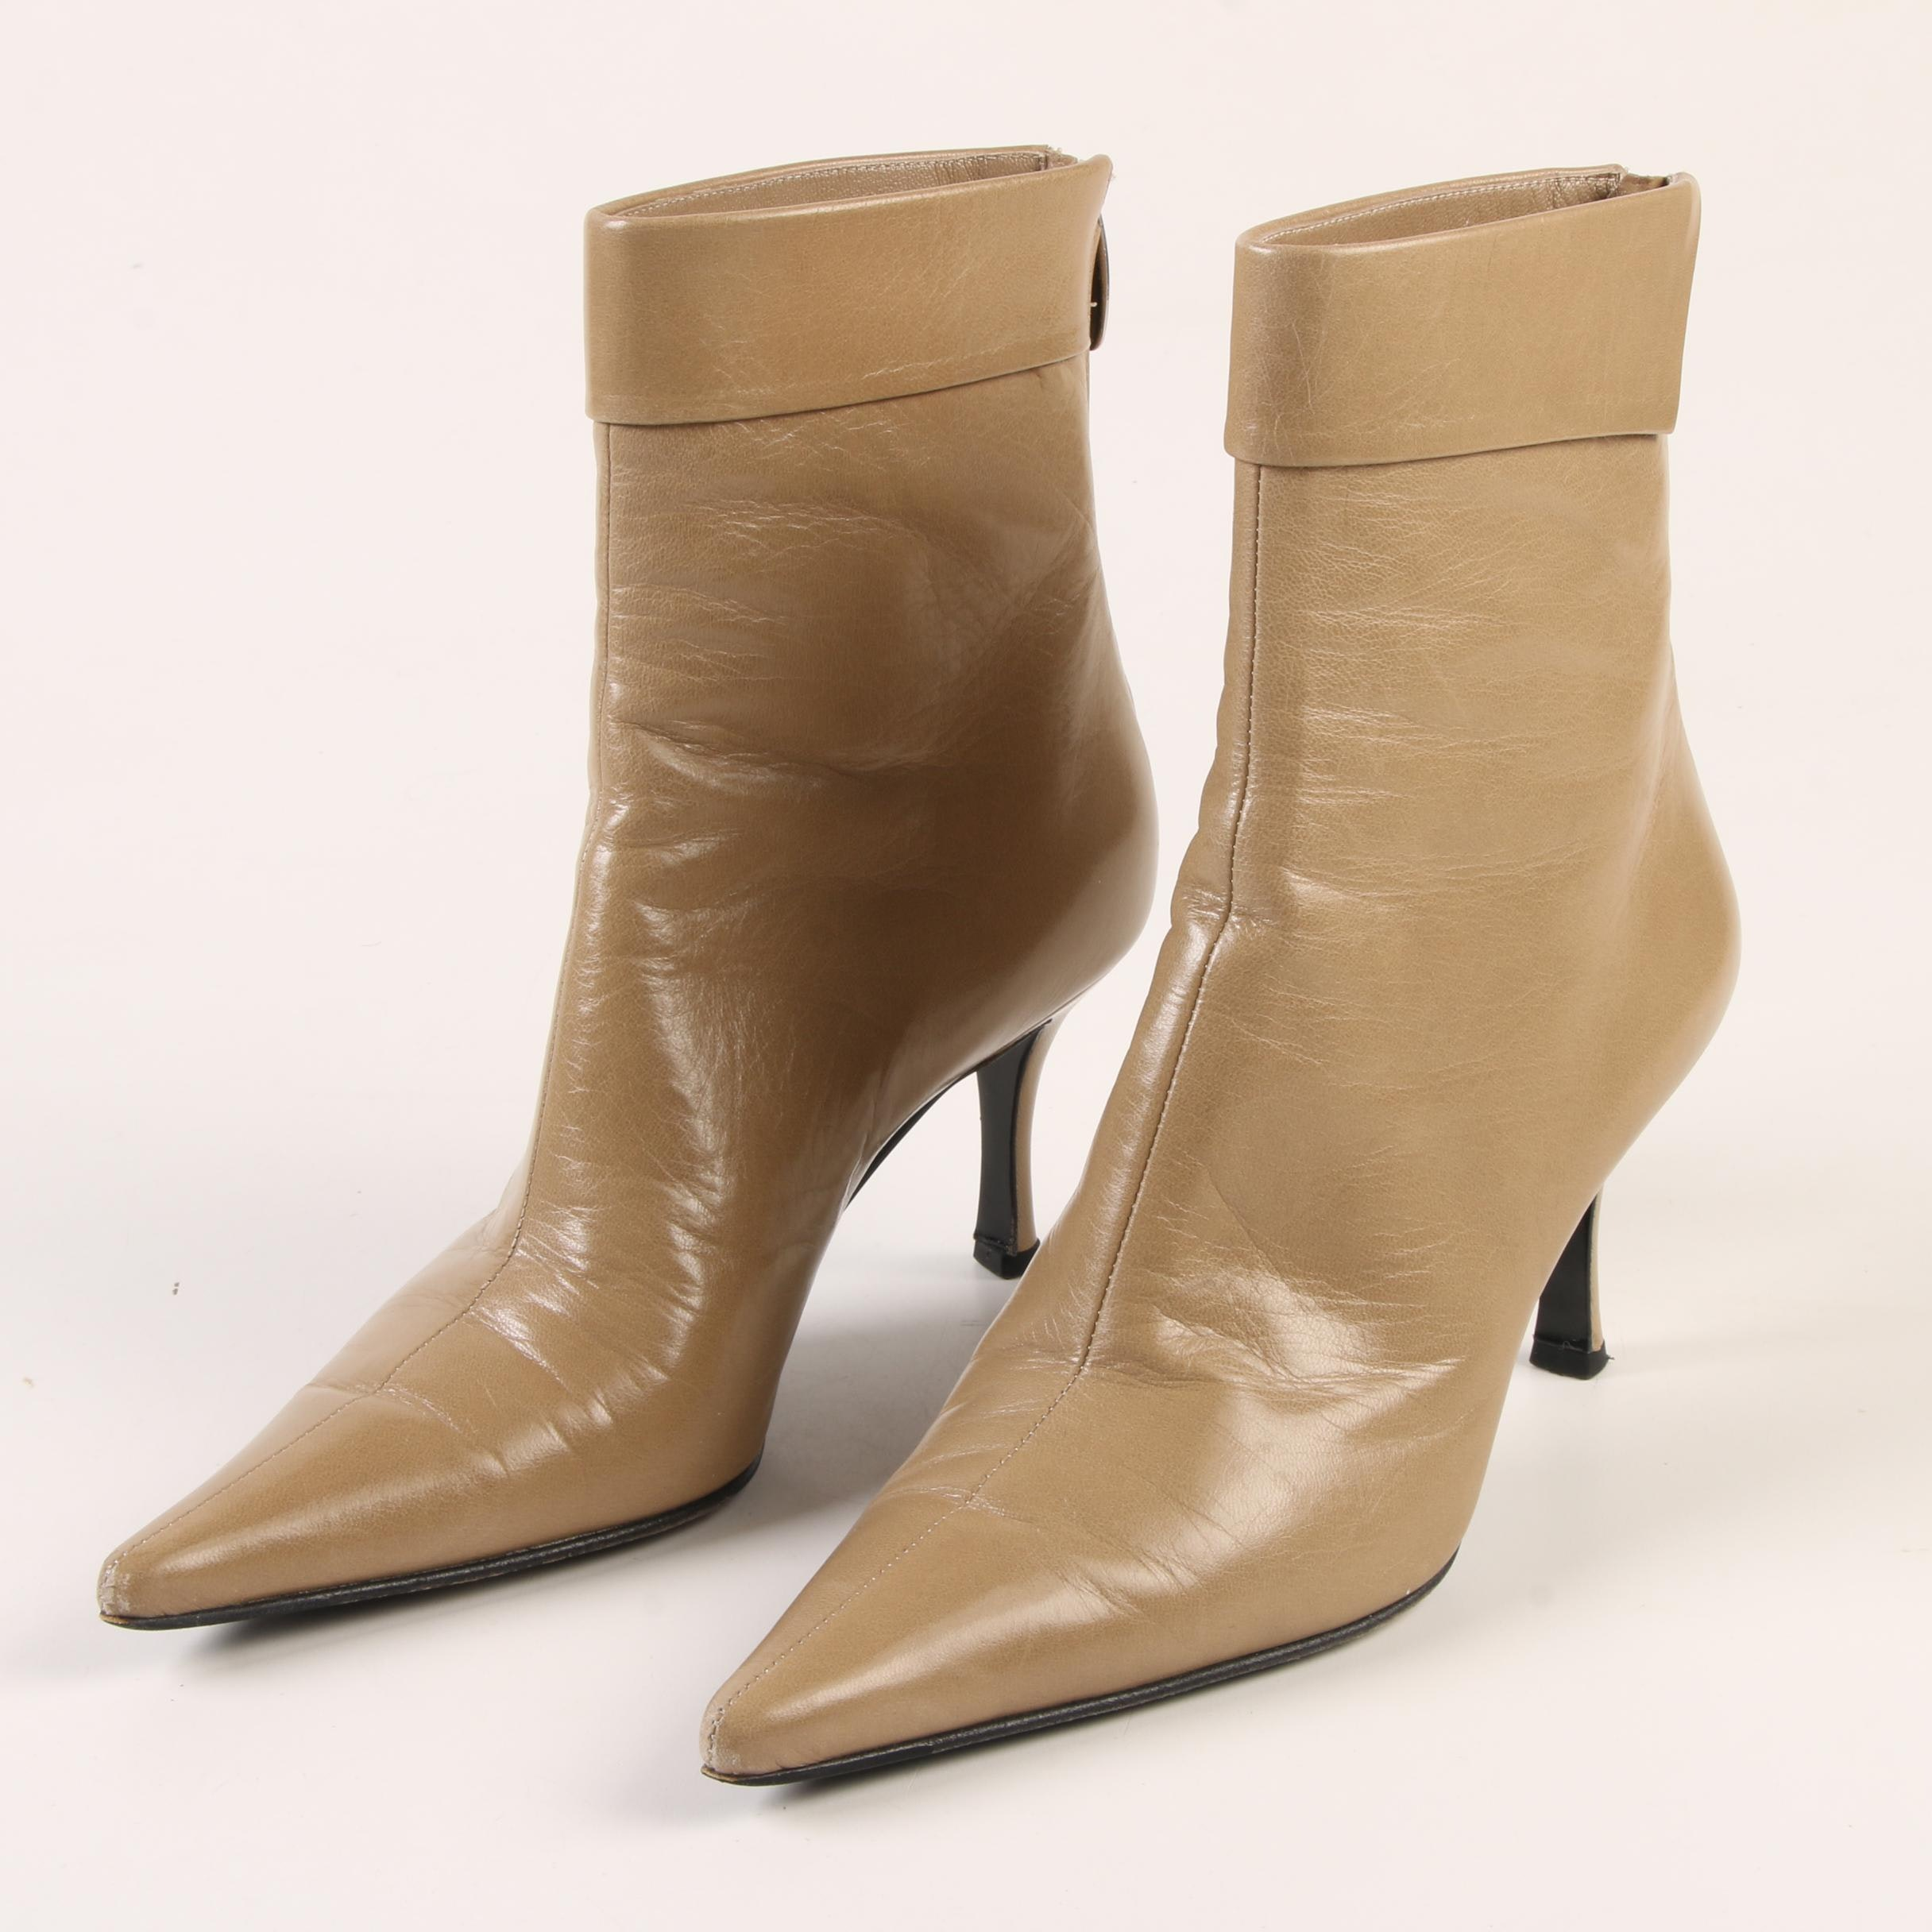 Sergio Rossi Beige Leather Cuffed High Heel Ankle Boots